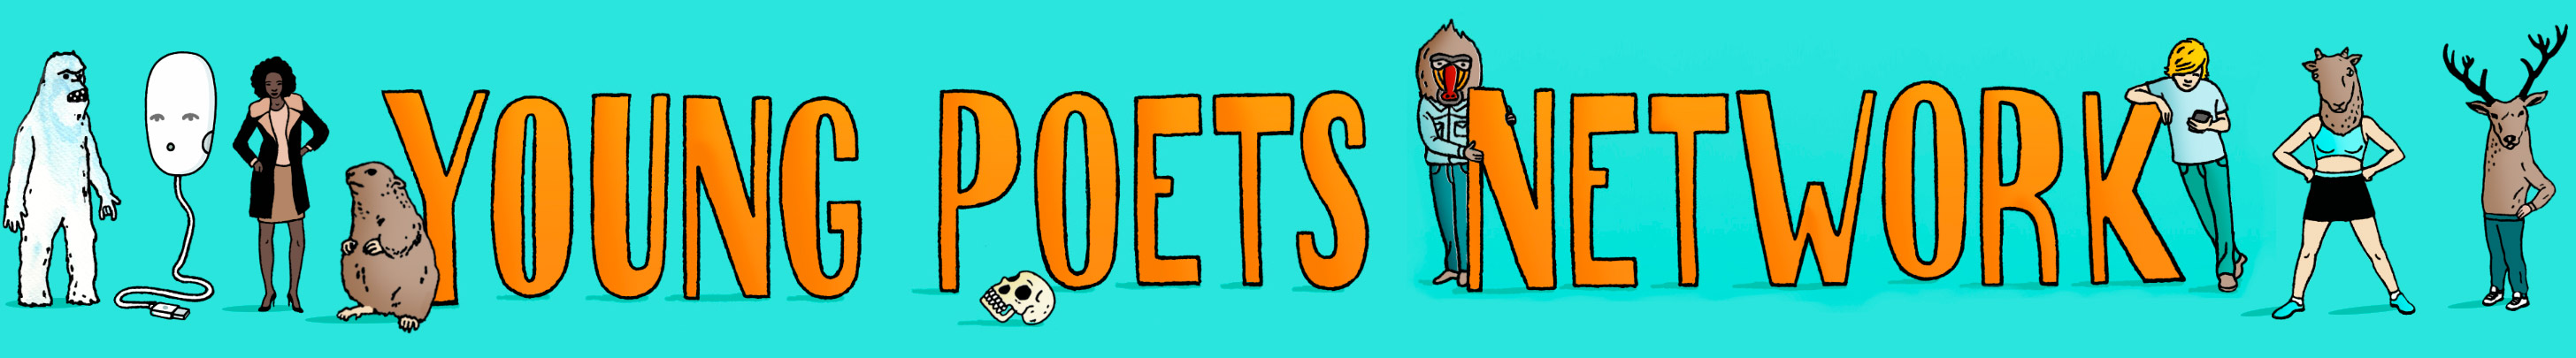 young poets network banner